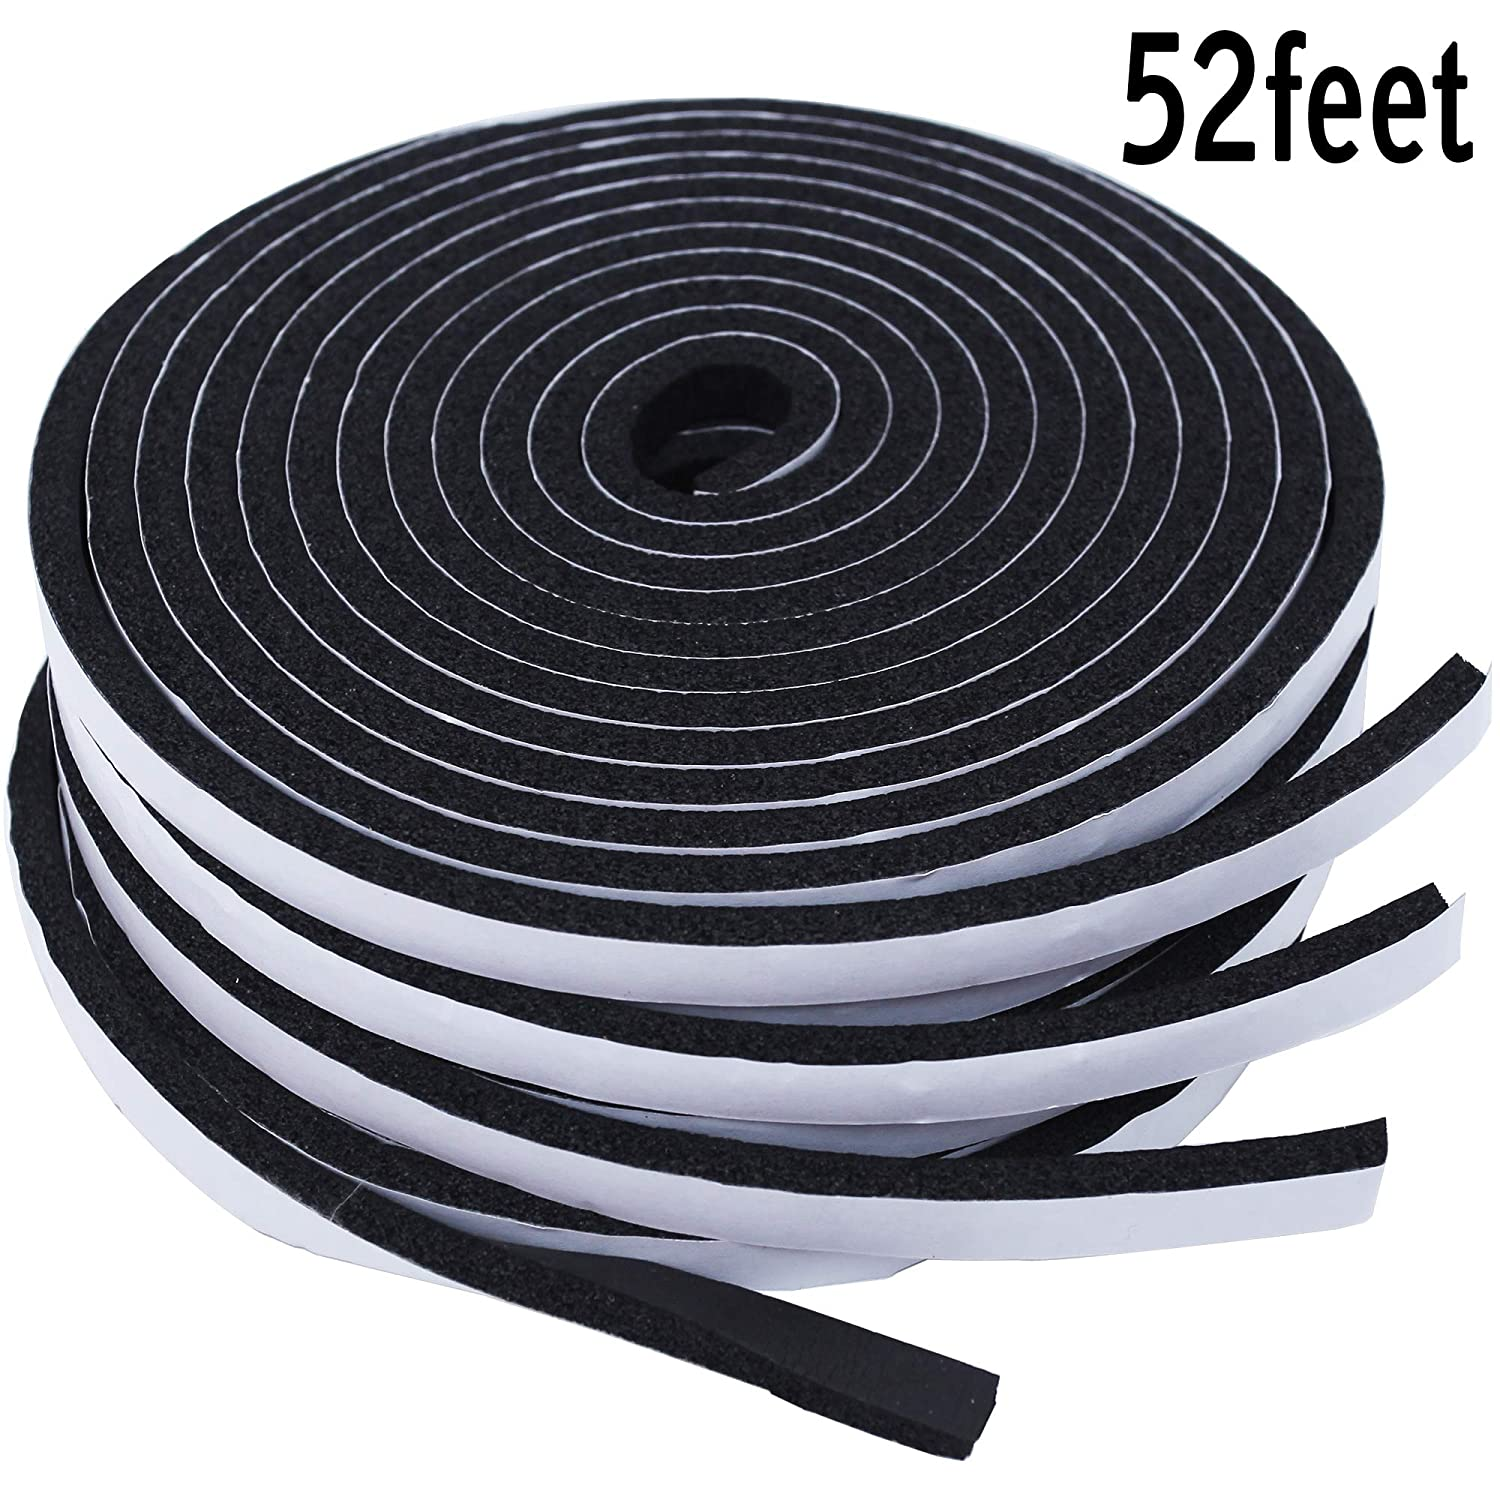 Foam Seal Tape - 52Ft Length High Density Sponge Rubber Strip, Strong Self Adhesive WeatherStrip Insulation Foam 25/64' Width X 15/64' Thick.